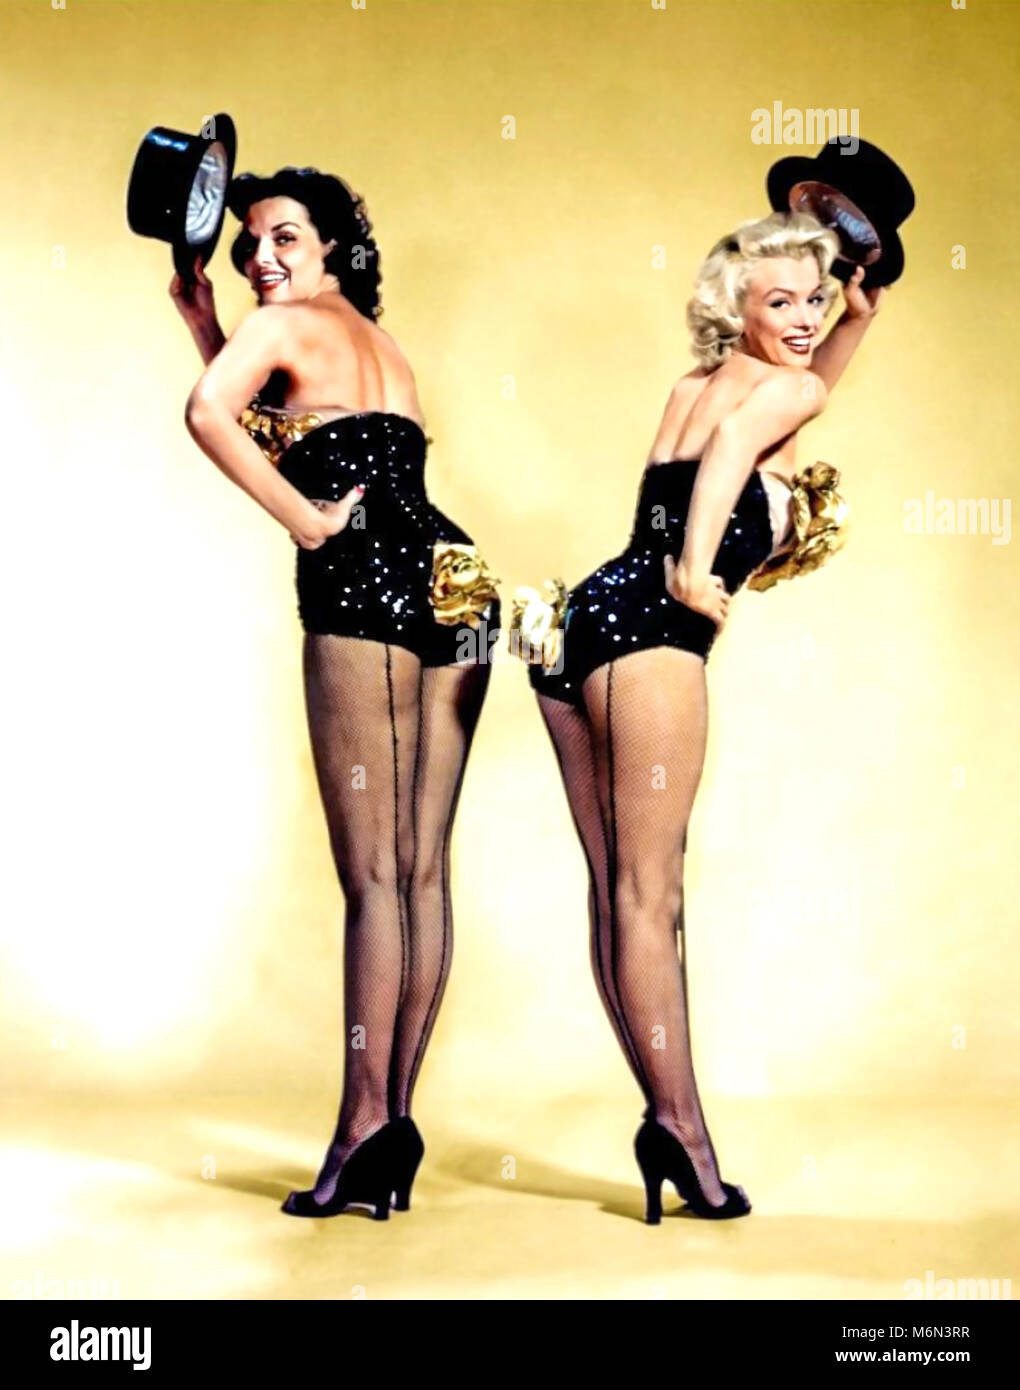 GENTLEMEN PREFER BLONDES 1953 MGM film with Jane Russell at left and Marilyn Monroe - Stock Image